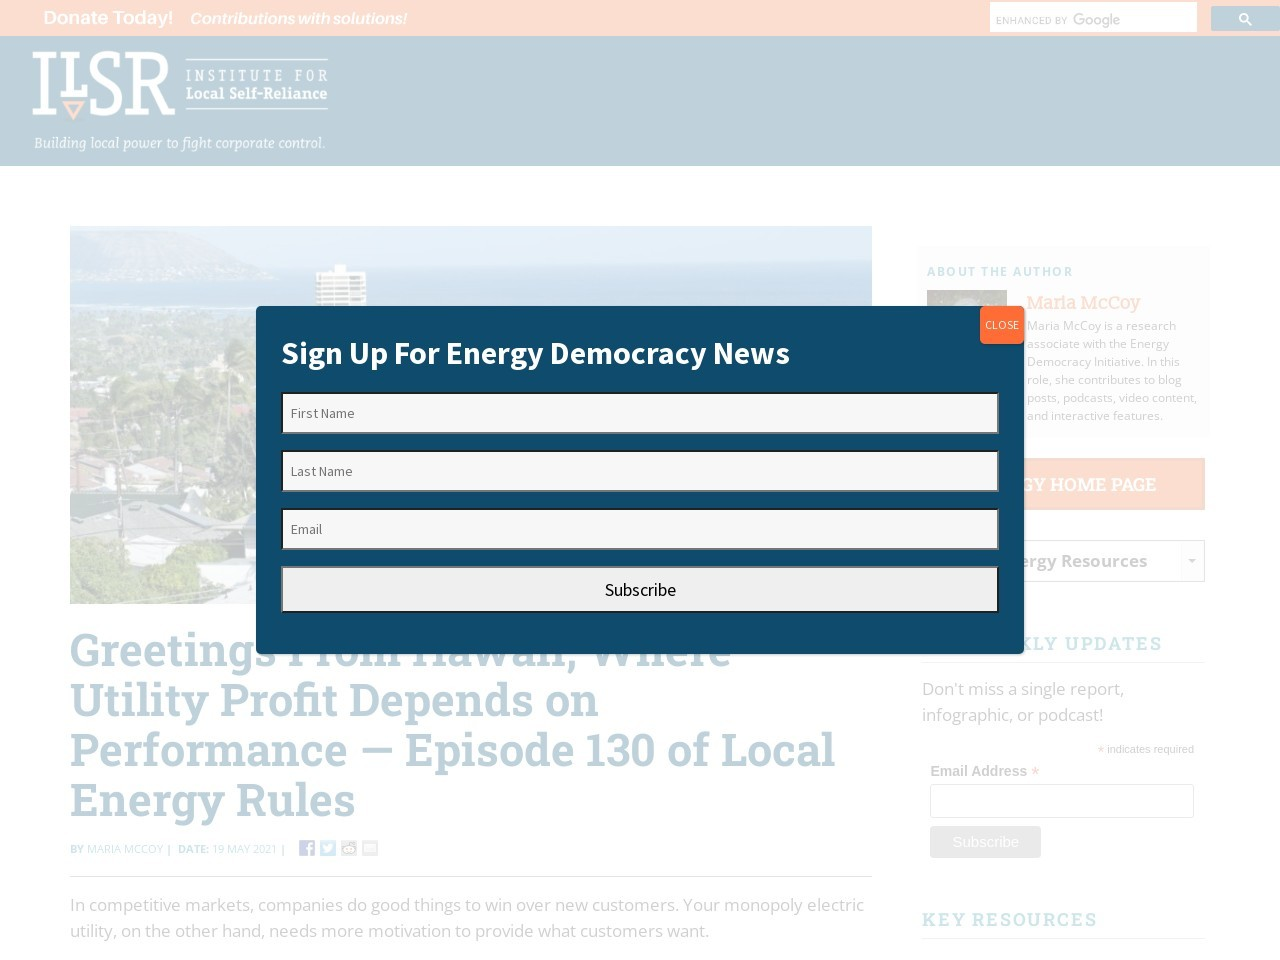 Greetings From Hawaii, Where Utility Profit Depends on Performance — Episode 130 of Local Energy Rules